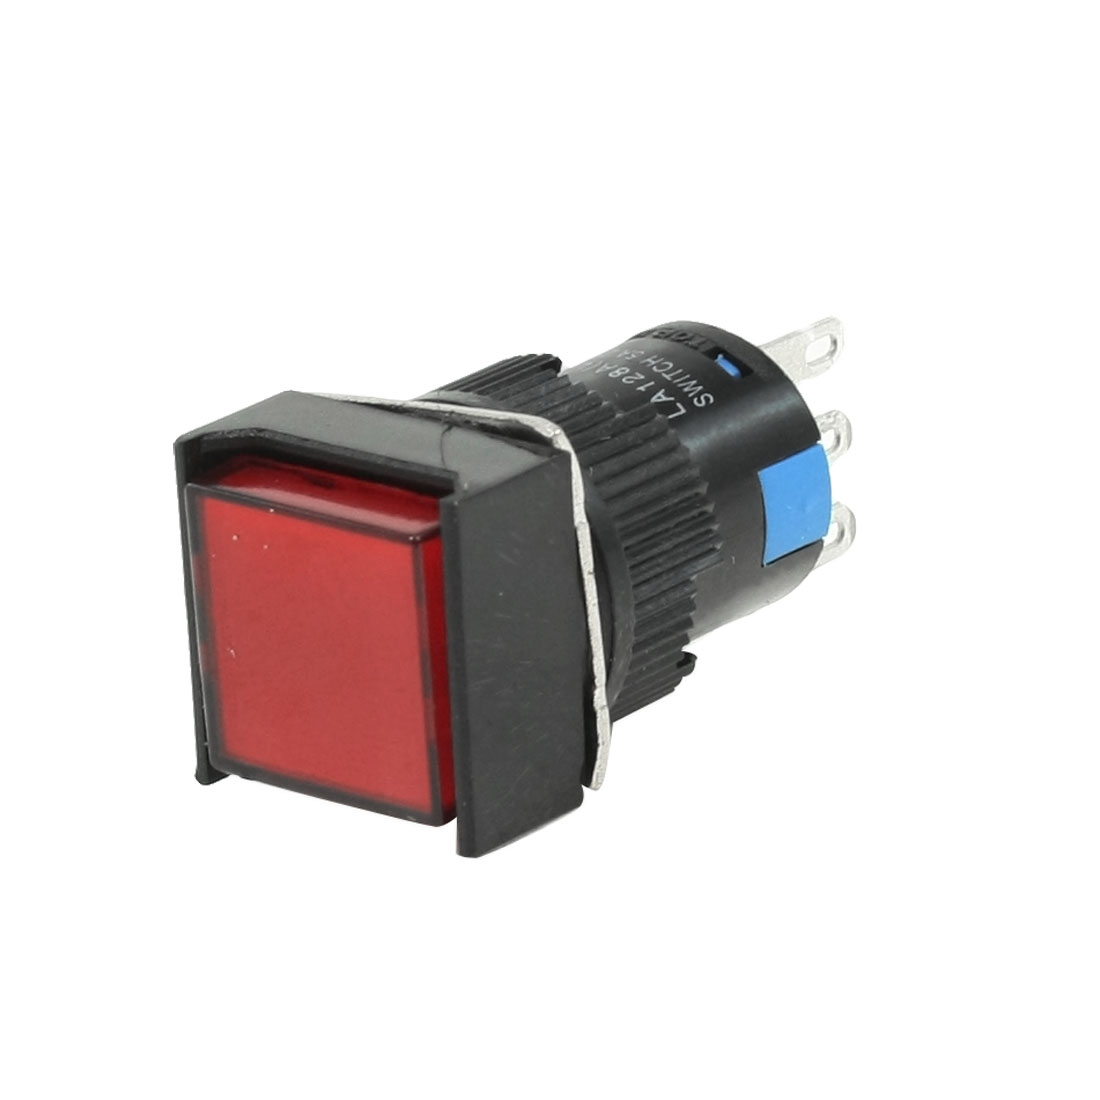 AC 250V 5A SPDT 1NO 1NC 3 Pins Momentary Red Square Push Button Switch